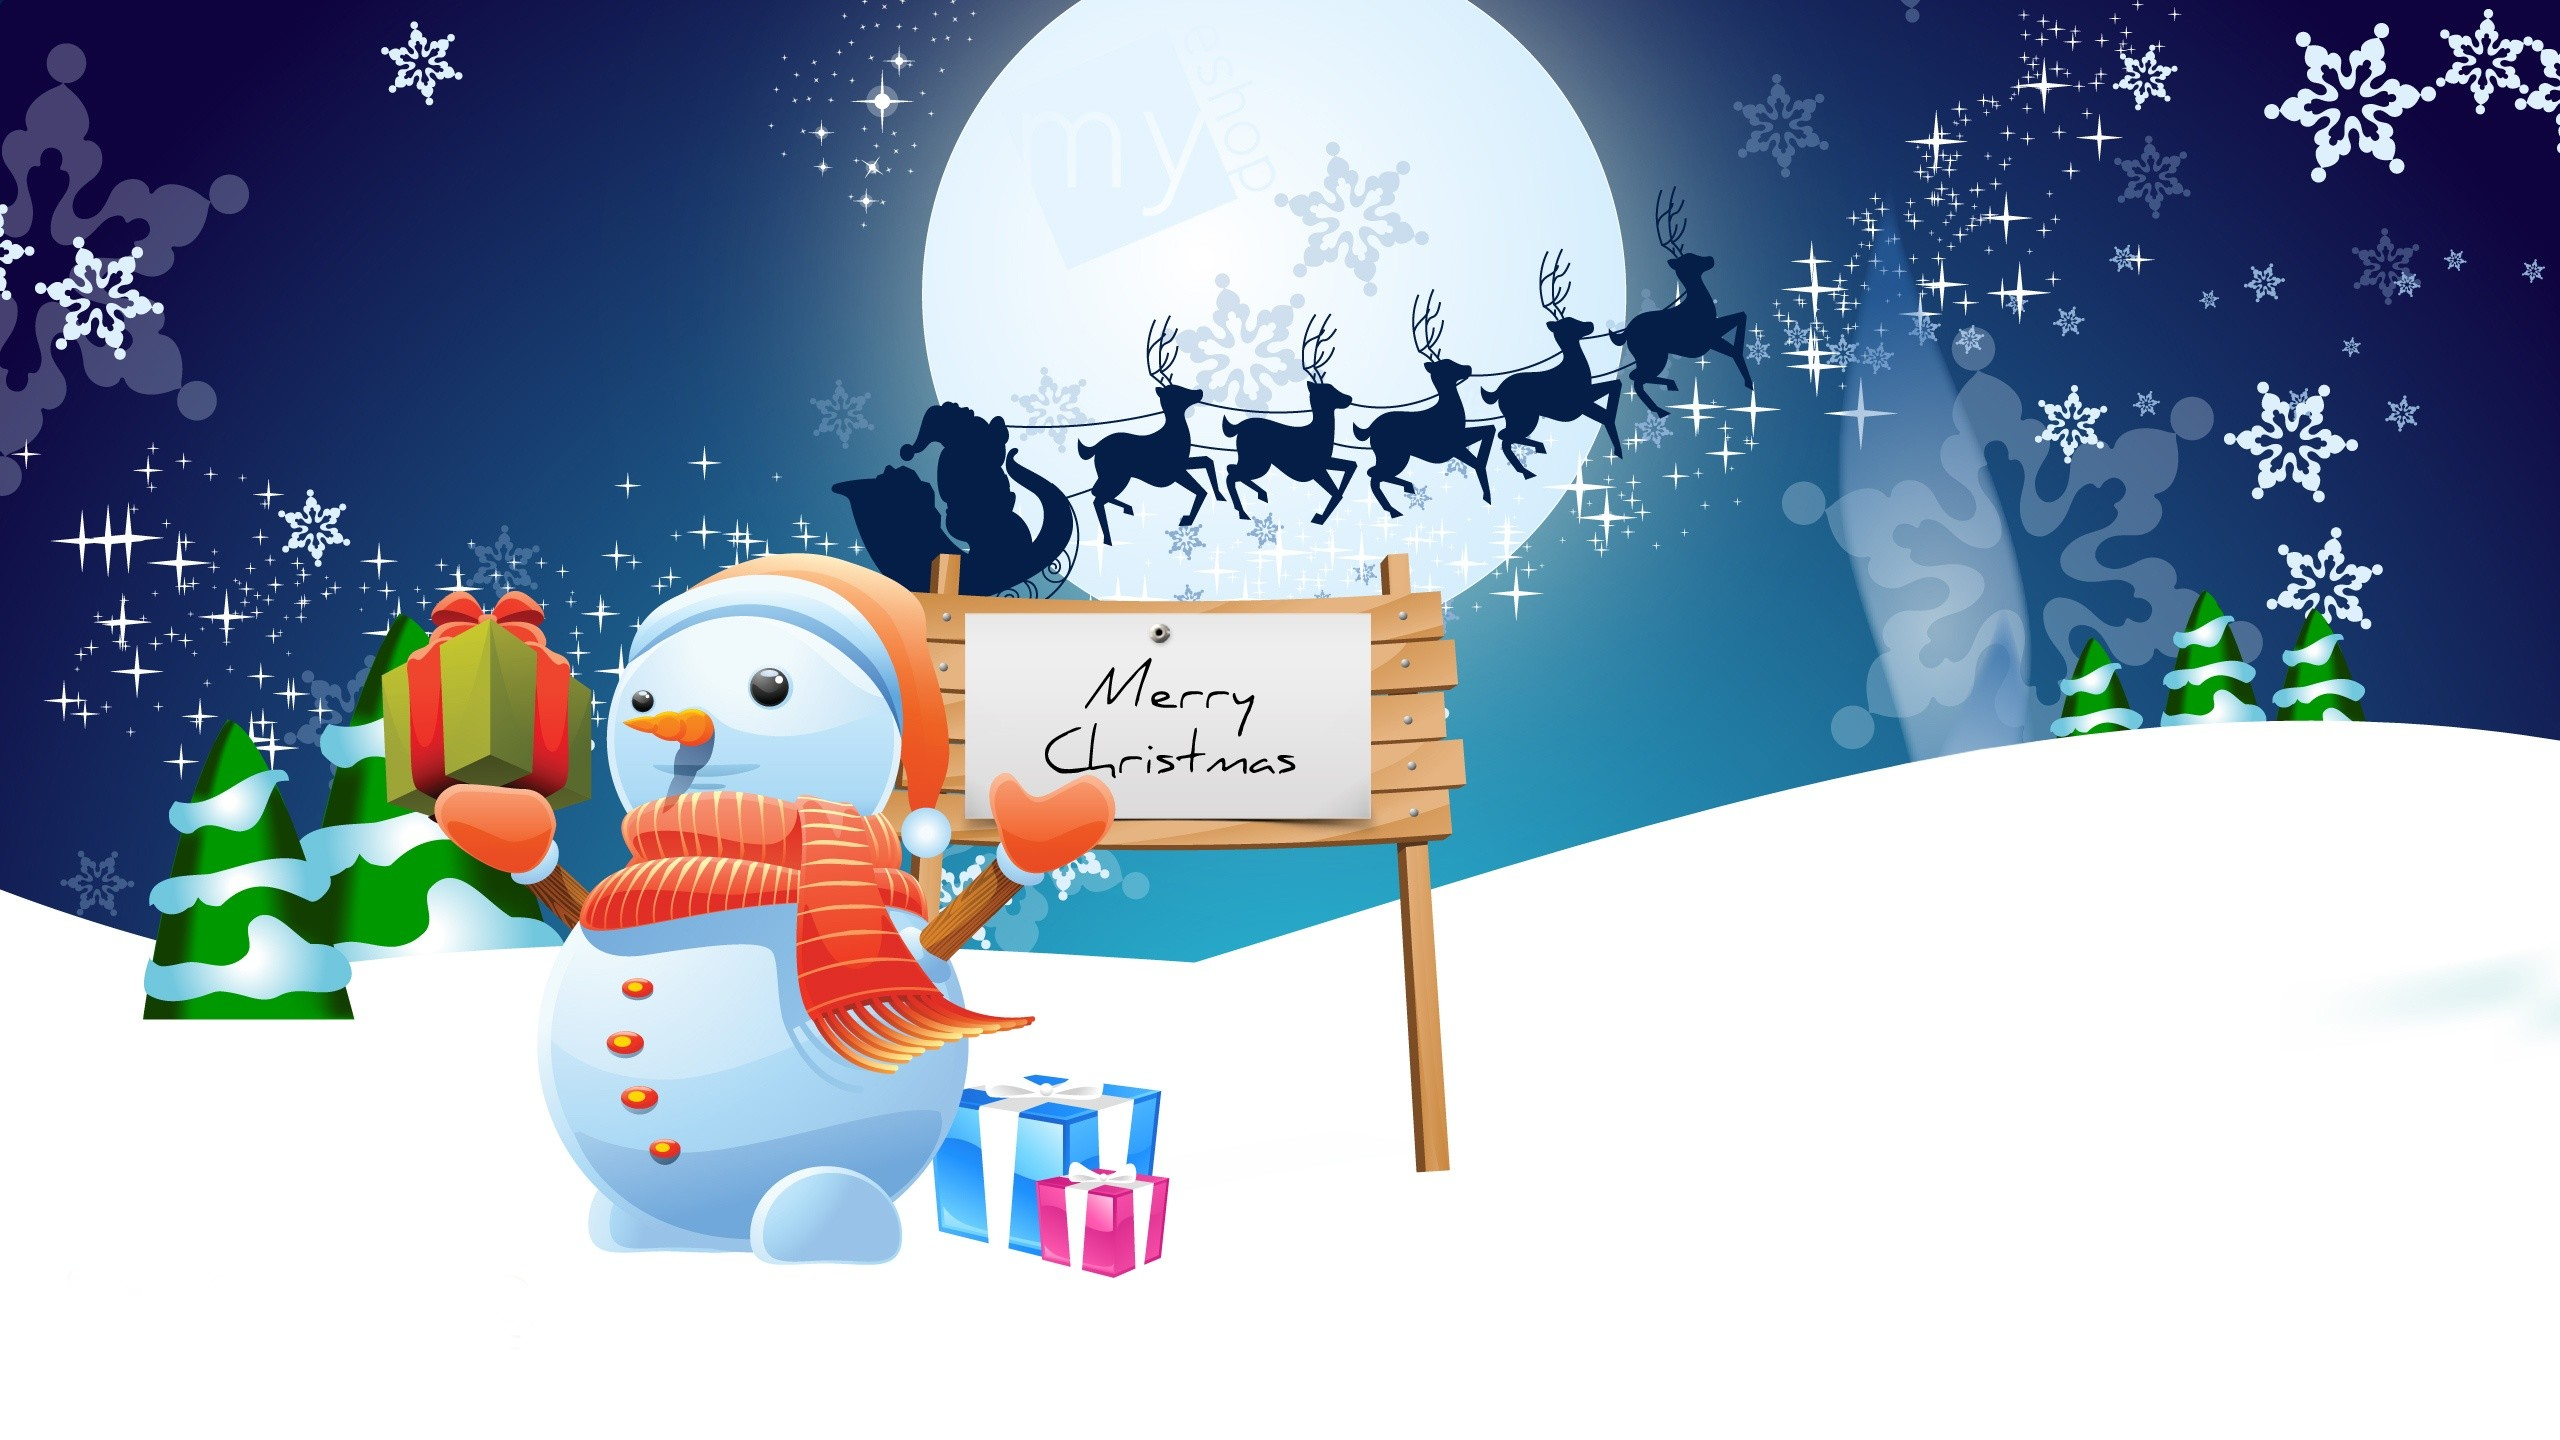 2560x1440 Animated Merry Christmas Wallpaper (18)